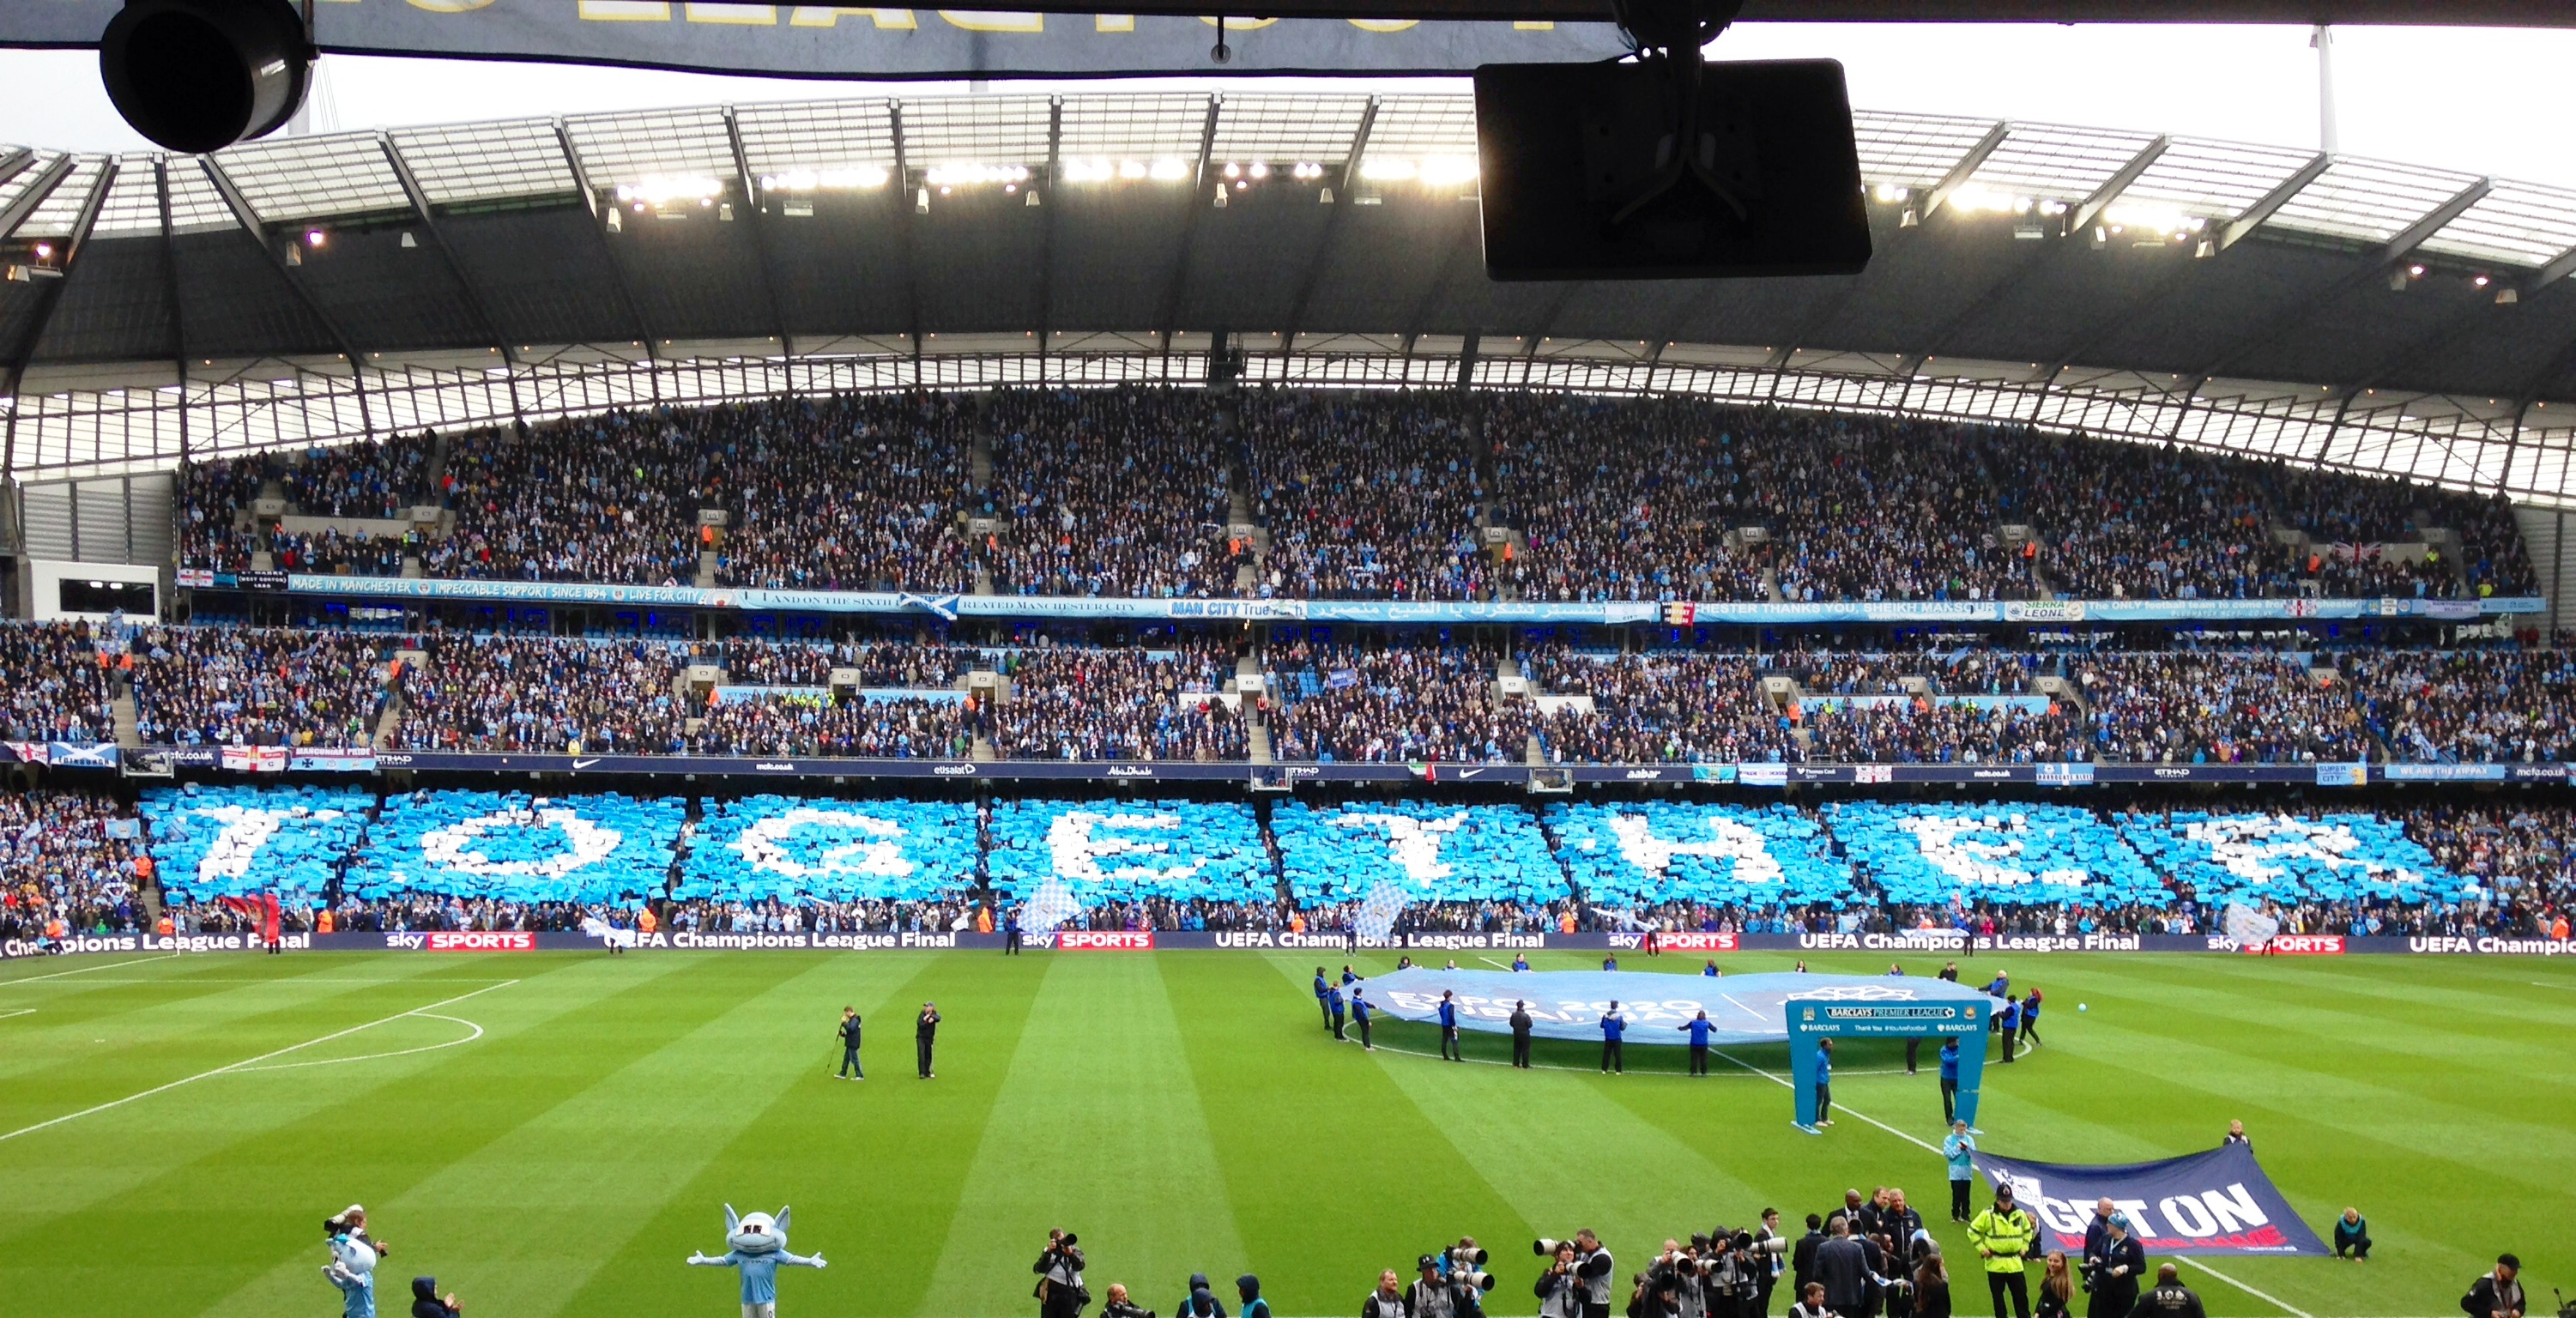 Let's get the party started - #TOGETHER at kick off.